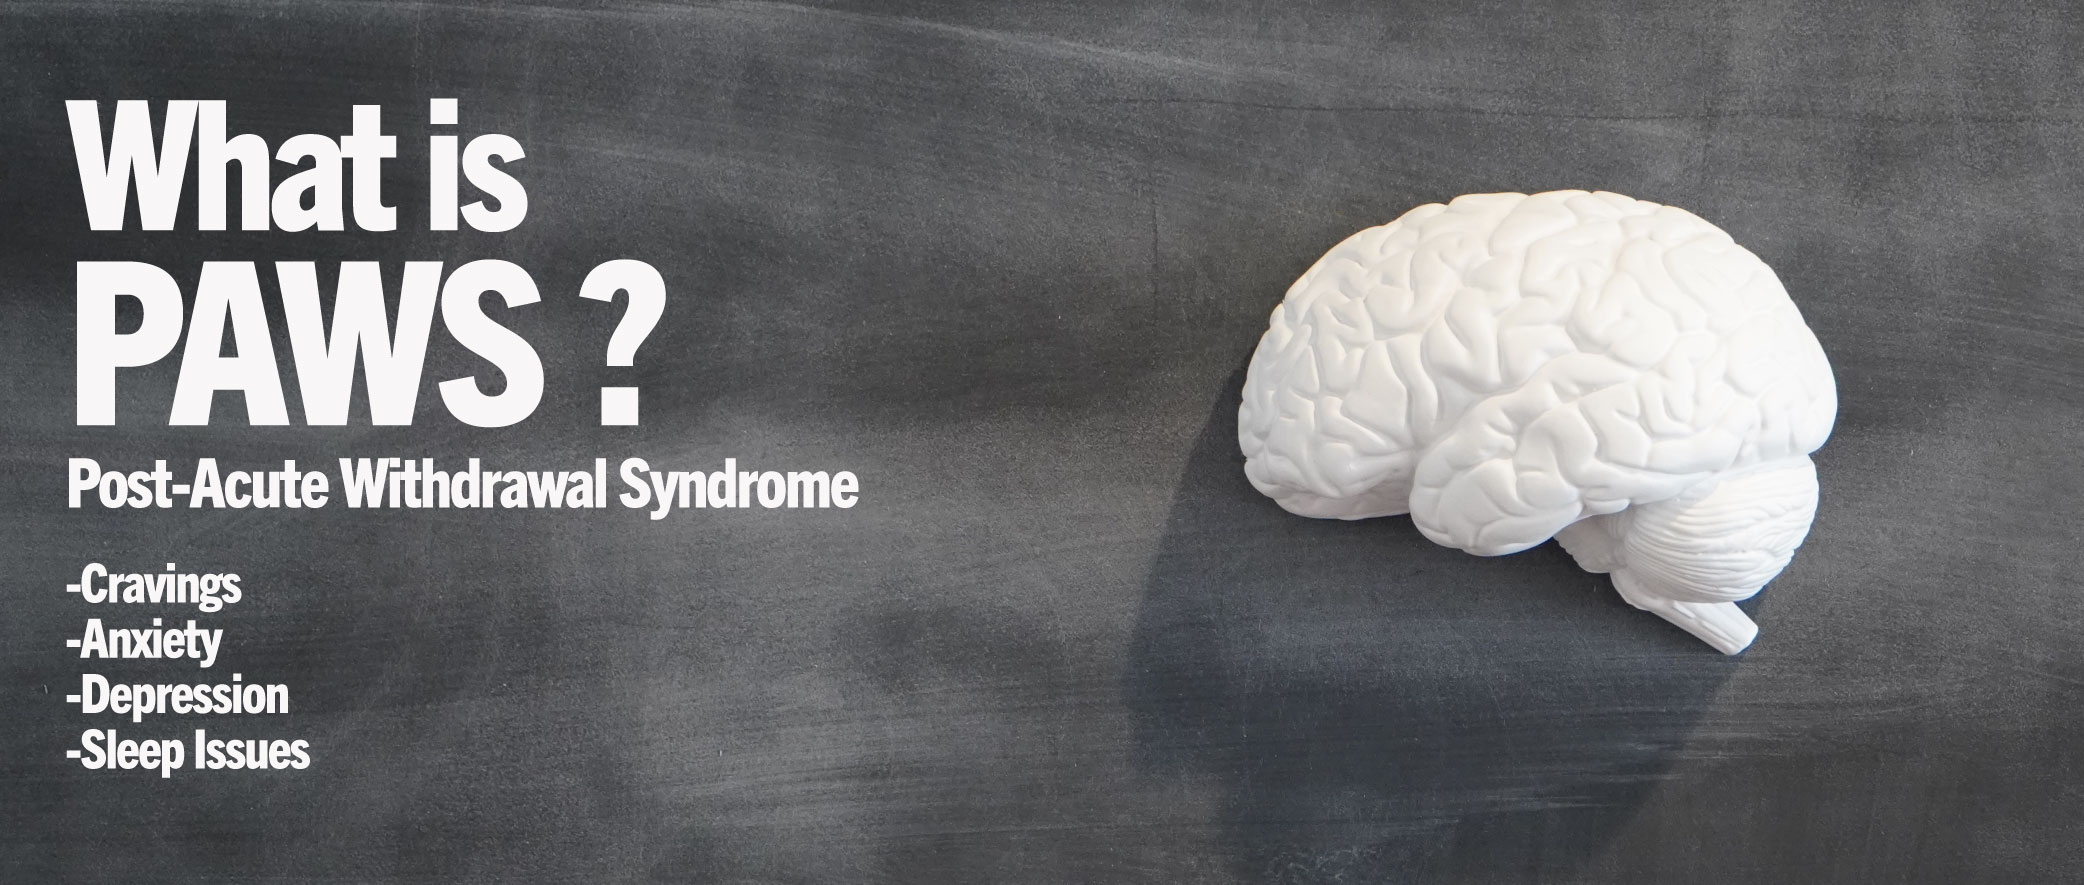 What Is Post Acute Withdrawal Syndrome